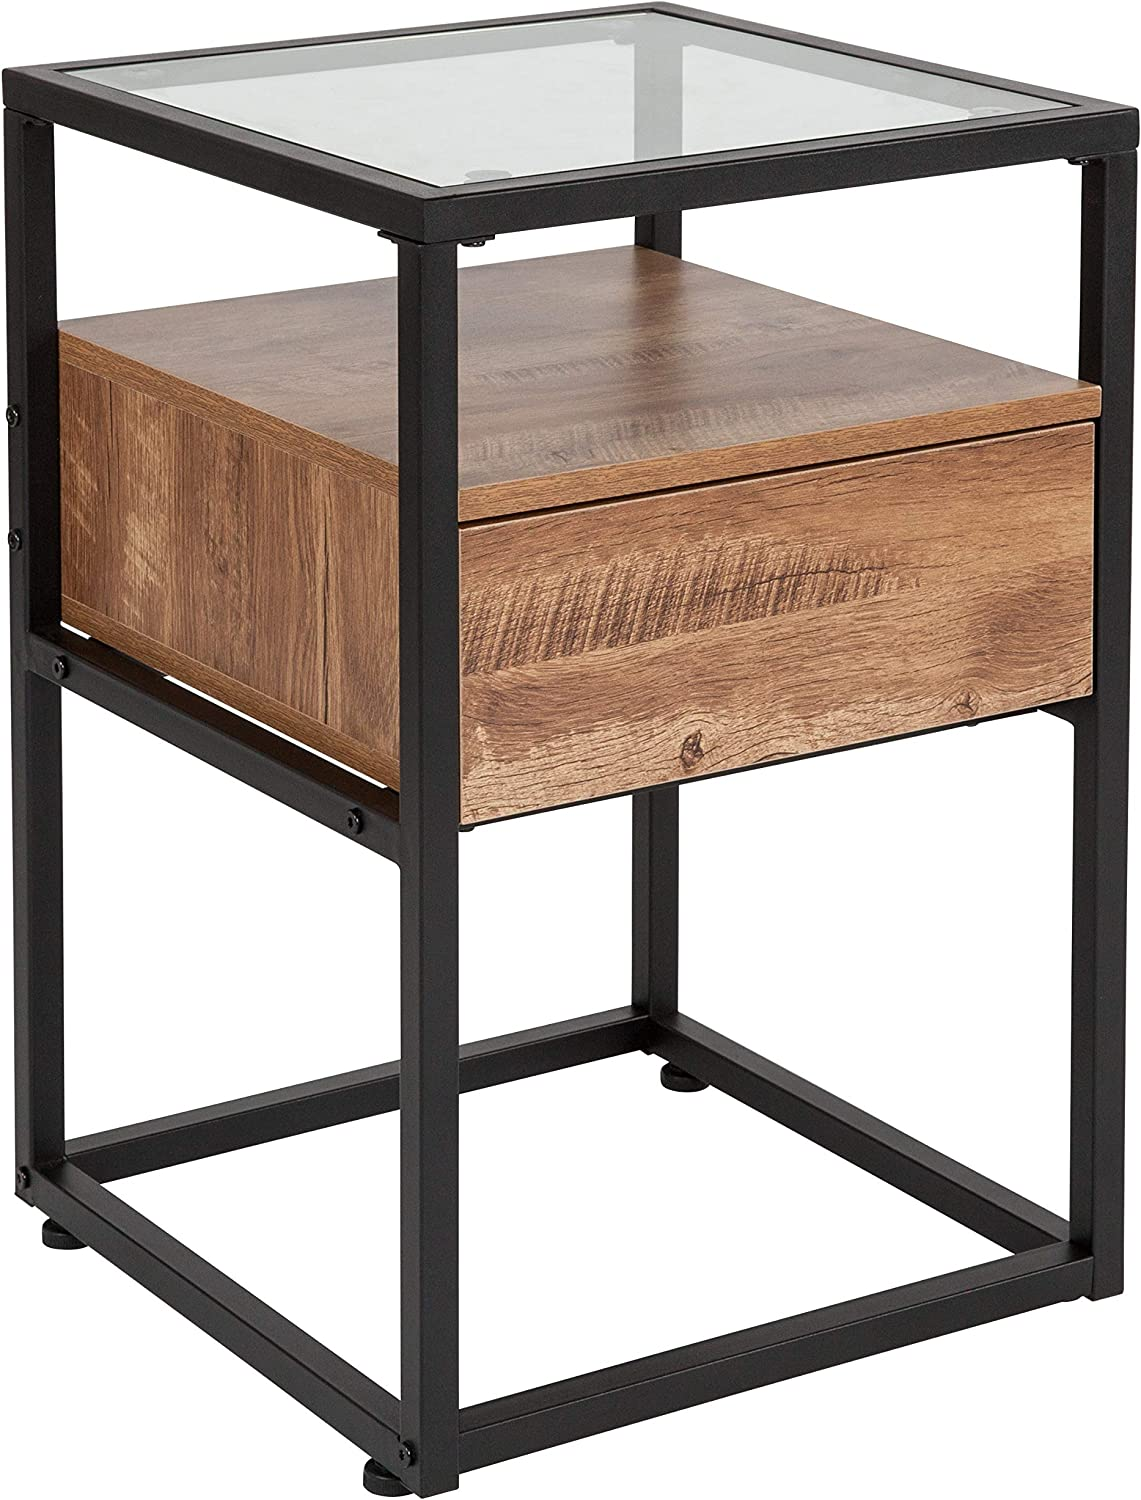 Taylor + Logan Glass End Table with Drawer and Shelf in Rustic Wood Grain Finish